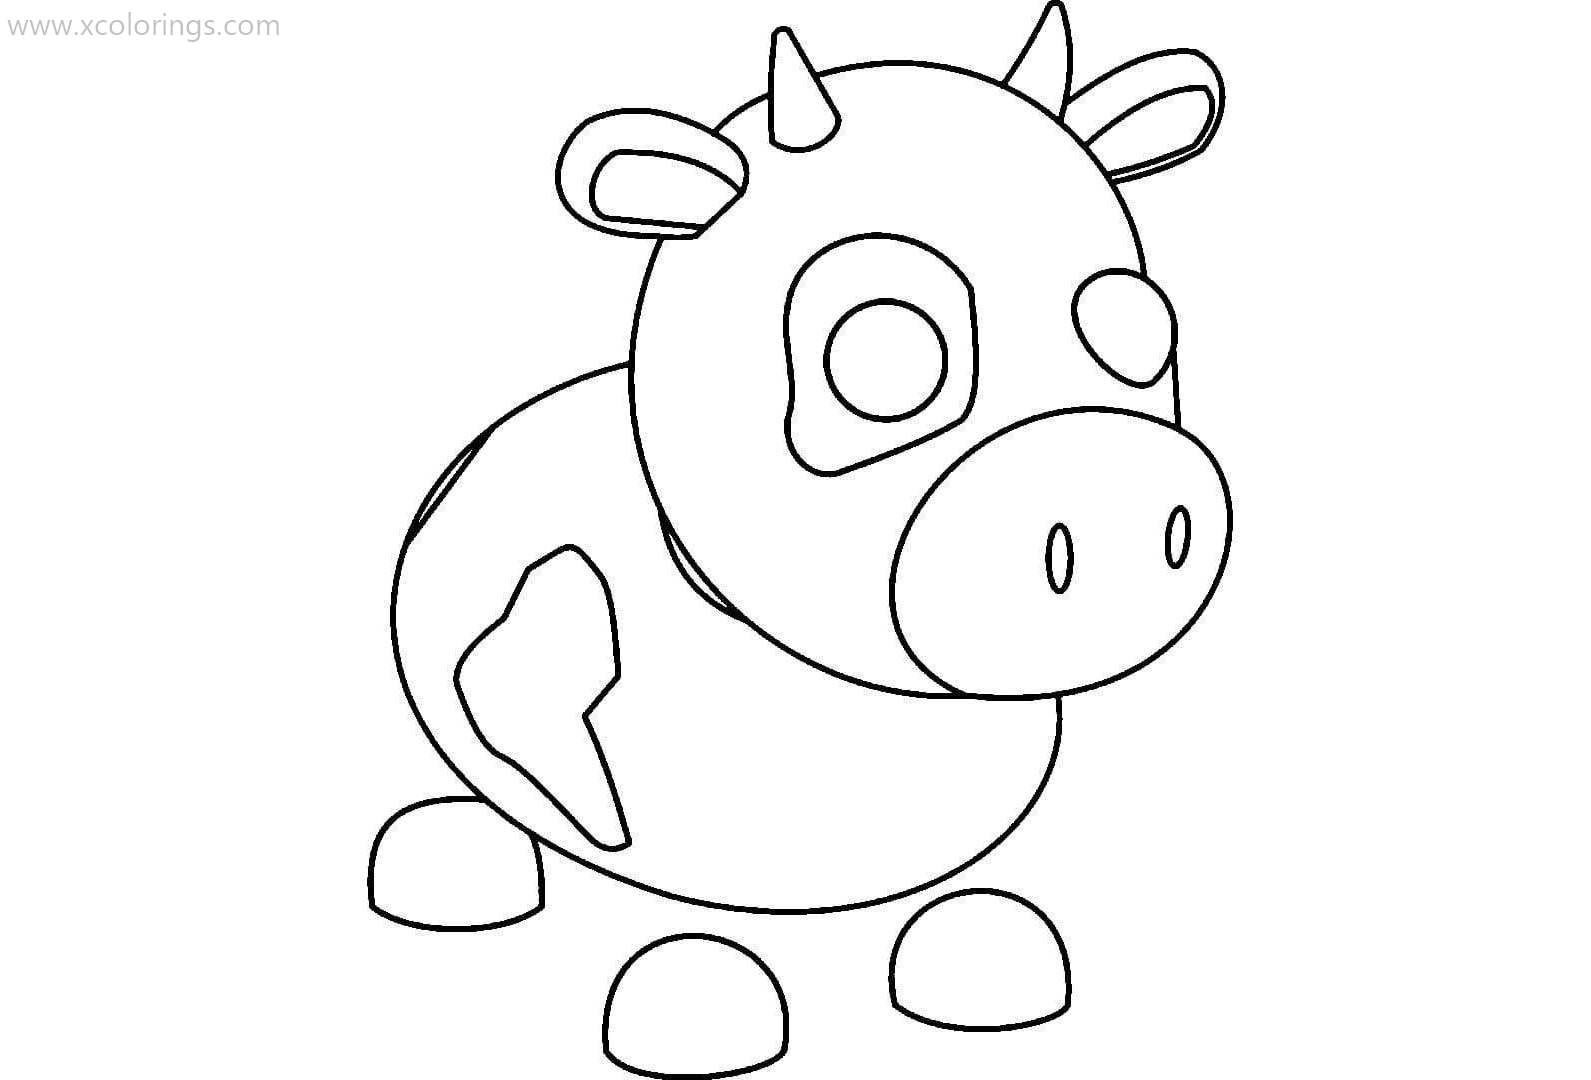 Roblox Adopt Me Coloring Pages Cow Cow Coloring Pages Unicorn Coloring Pages Coloring Pages